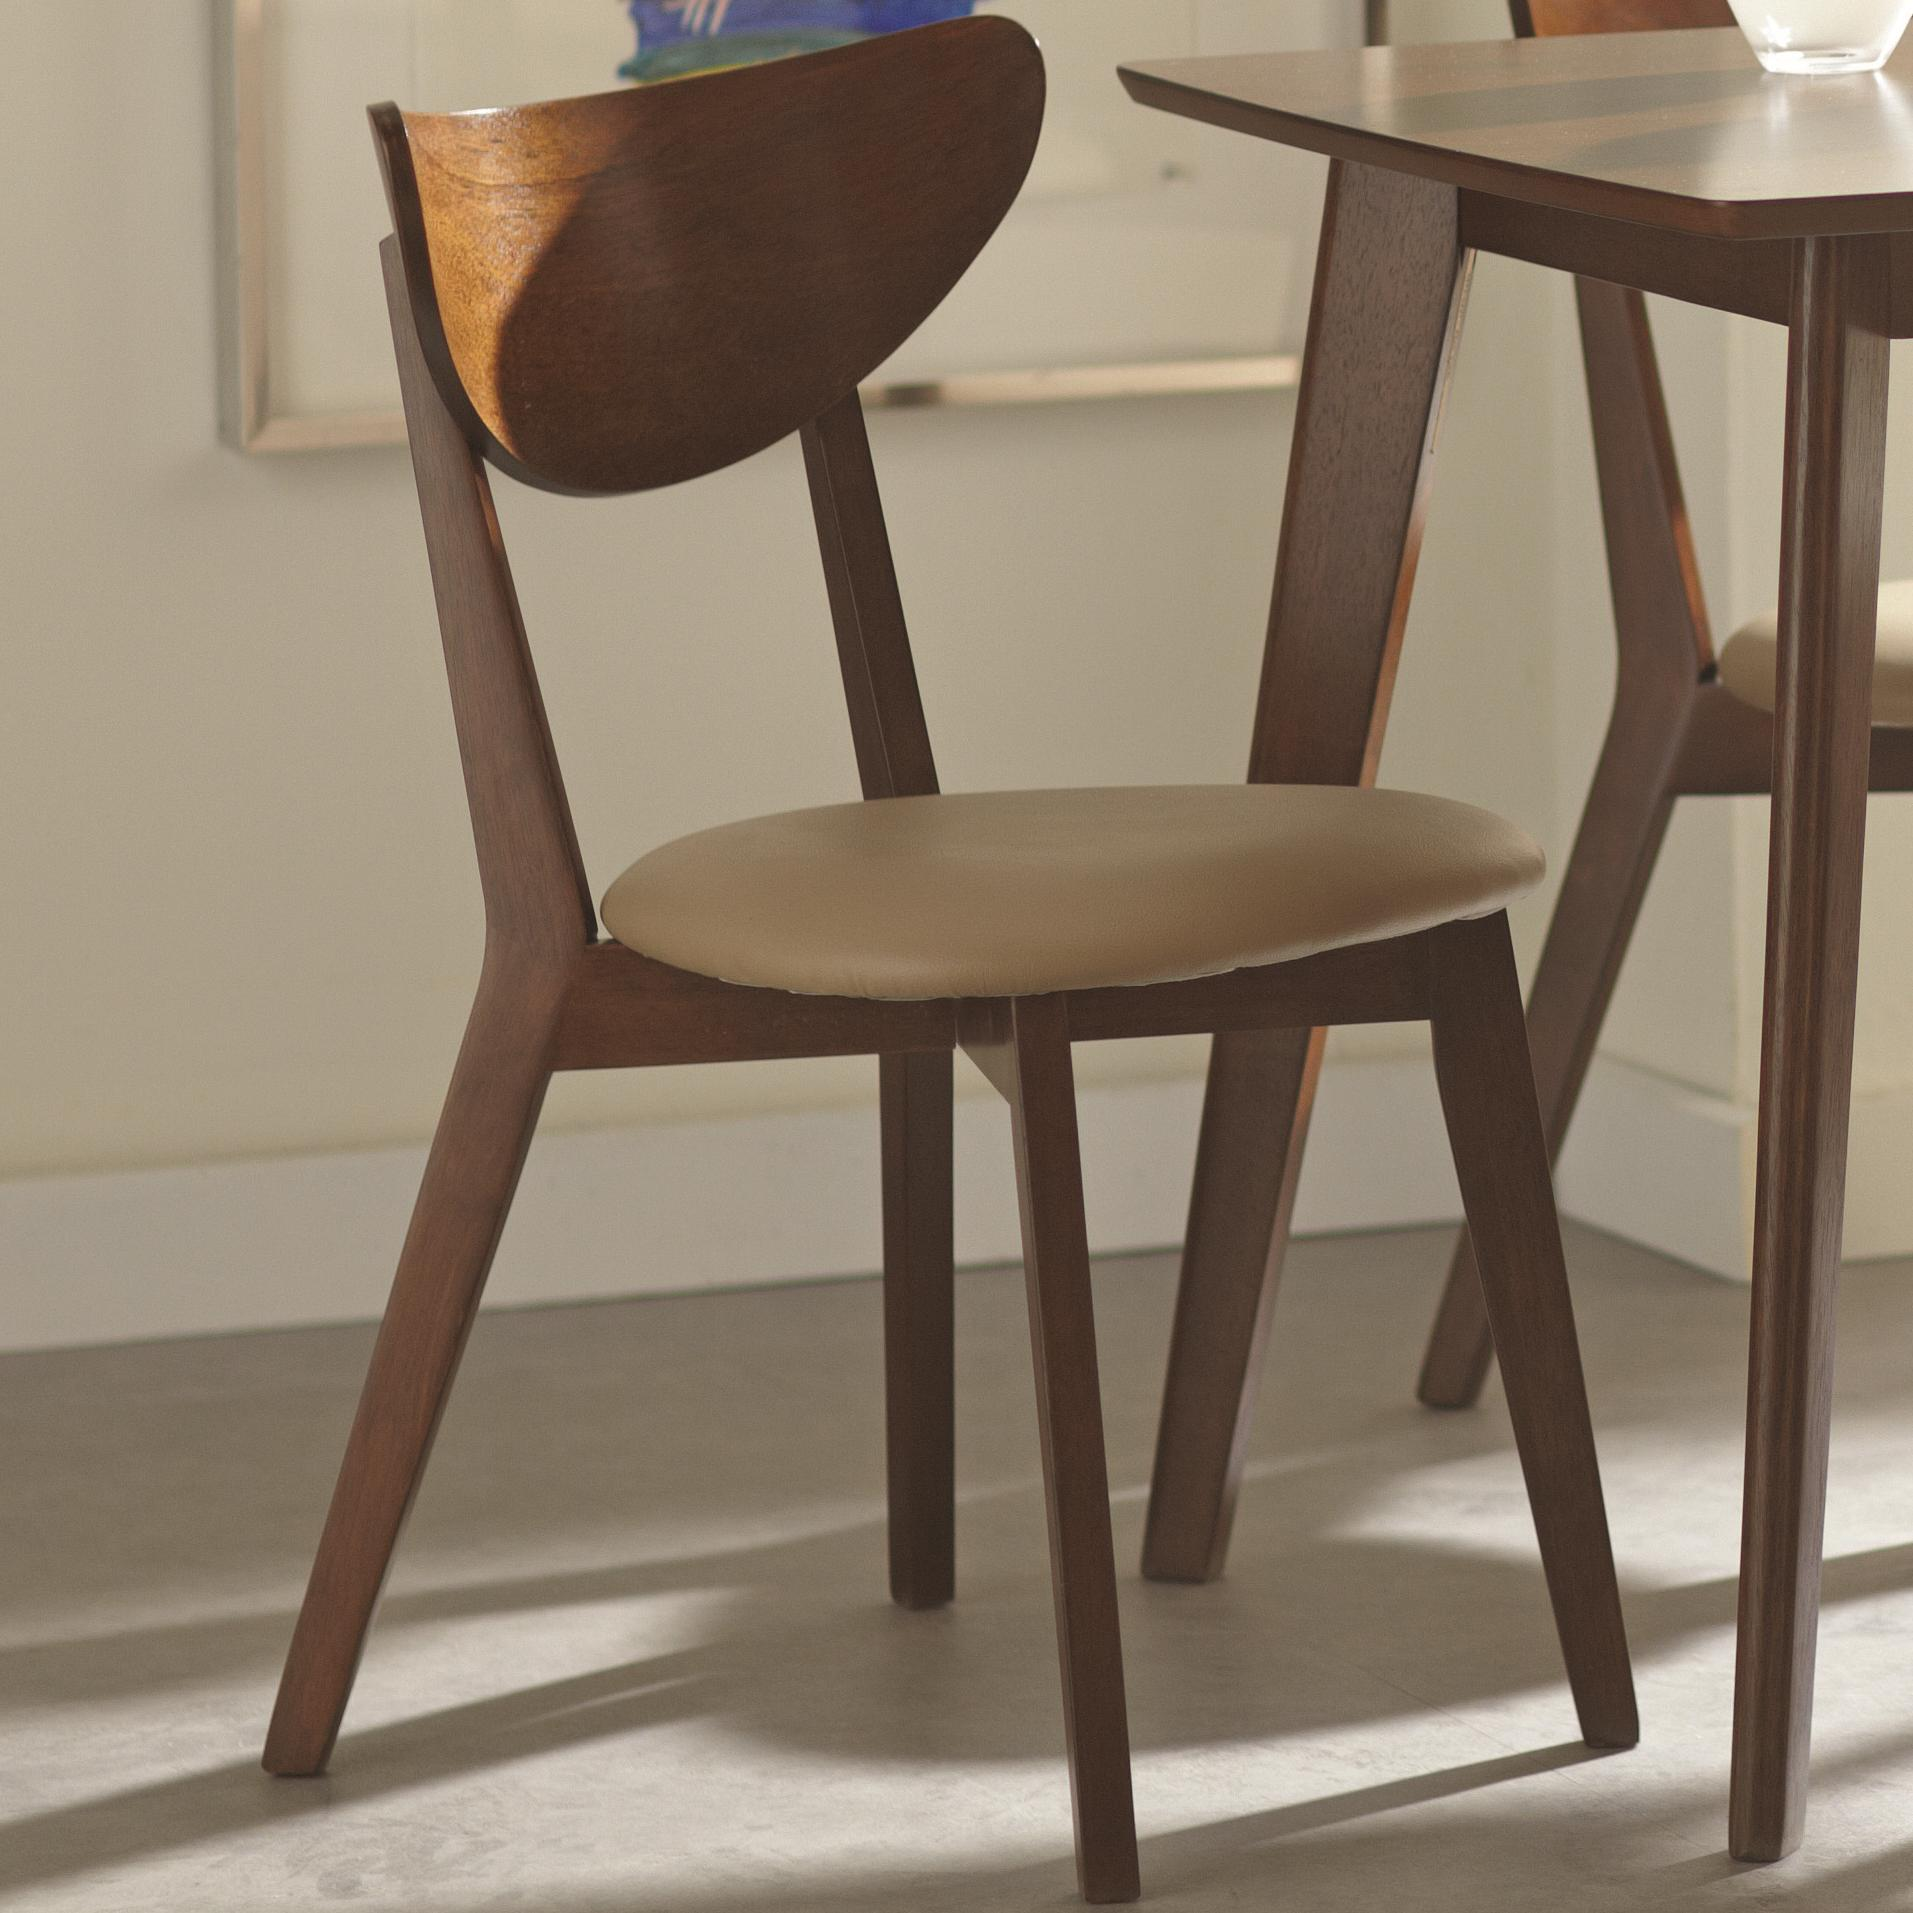 Coaster Kersey Dining Side Chairs - Item Number: 103062